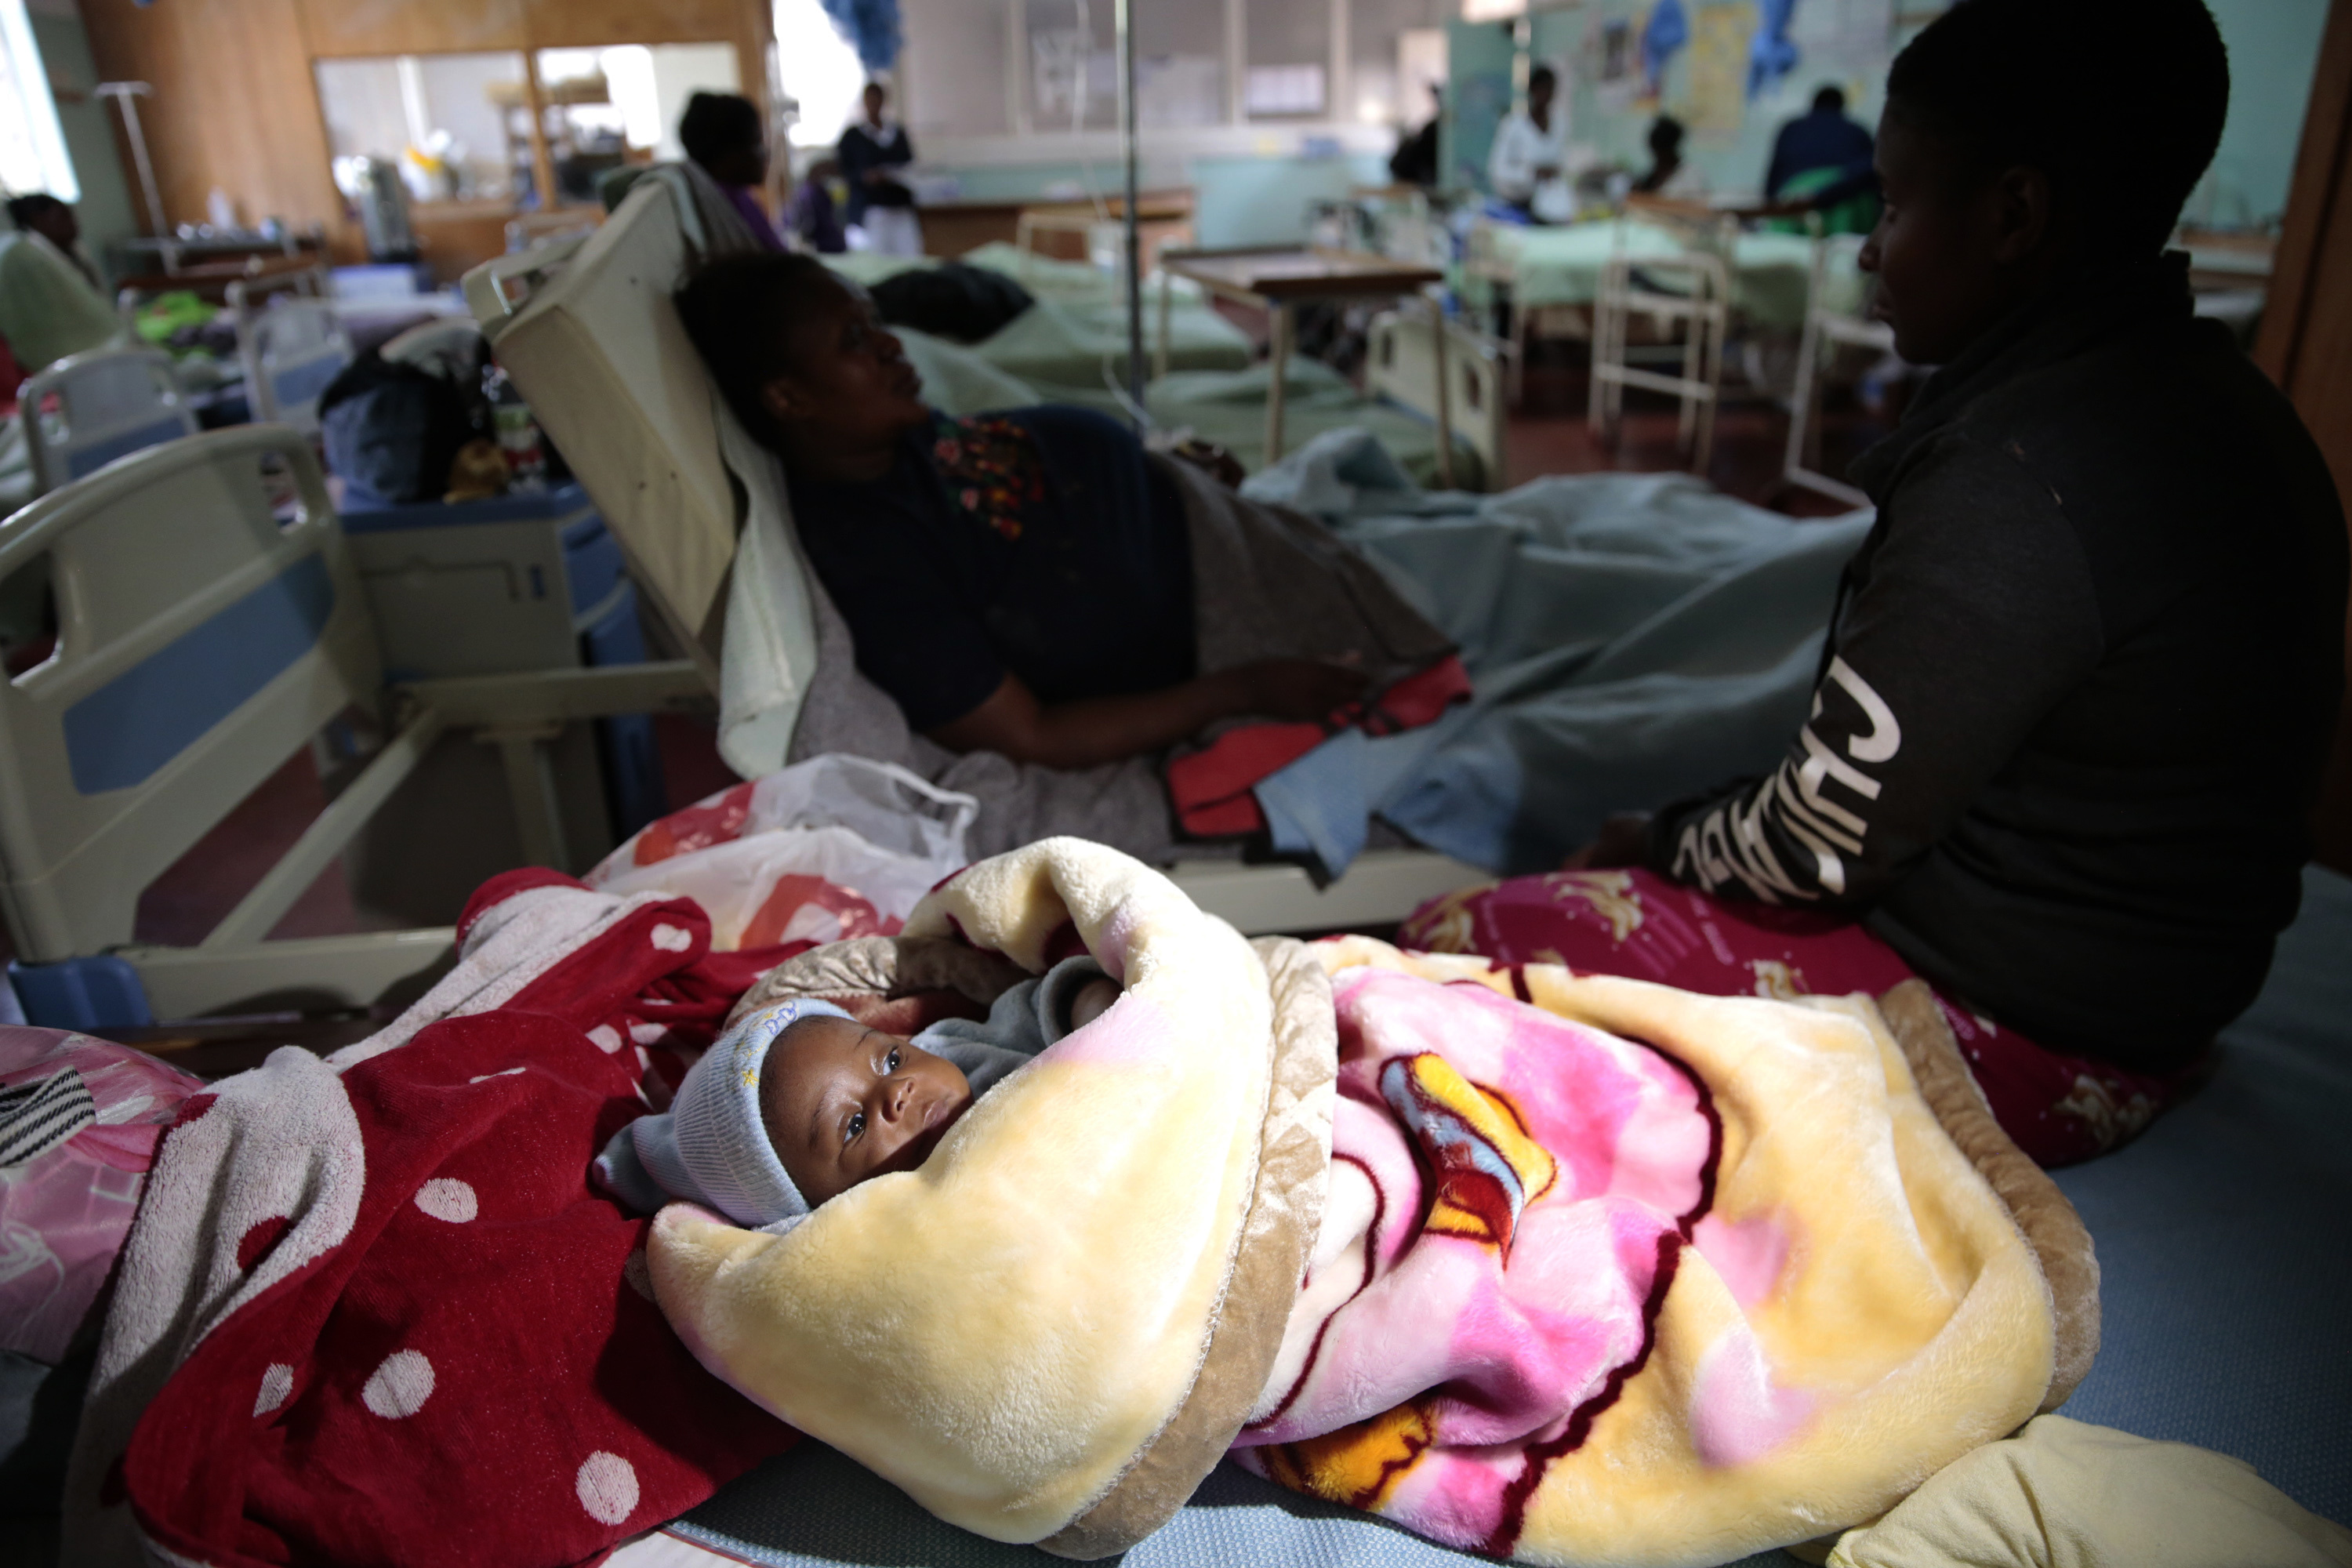 Klavan Munyisa who is 3 months old lays in a hospital bed after surviving a bus crash in Rusape about 170 kilometres east of the capital Harare, Thursday, Nov. 8, 2018. A head-on collision between two buses has killed 47 people, where road accidents are common due to poor roads and bad driving. (AP Photo/Tsvangirayi Mukwazhi)